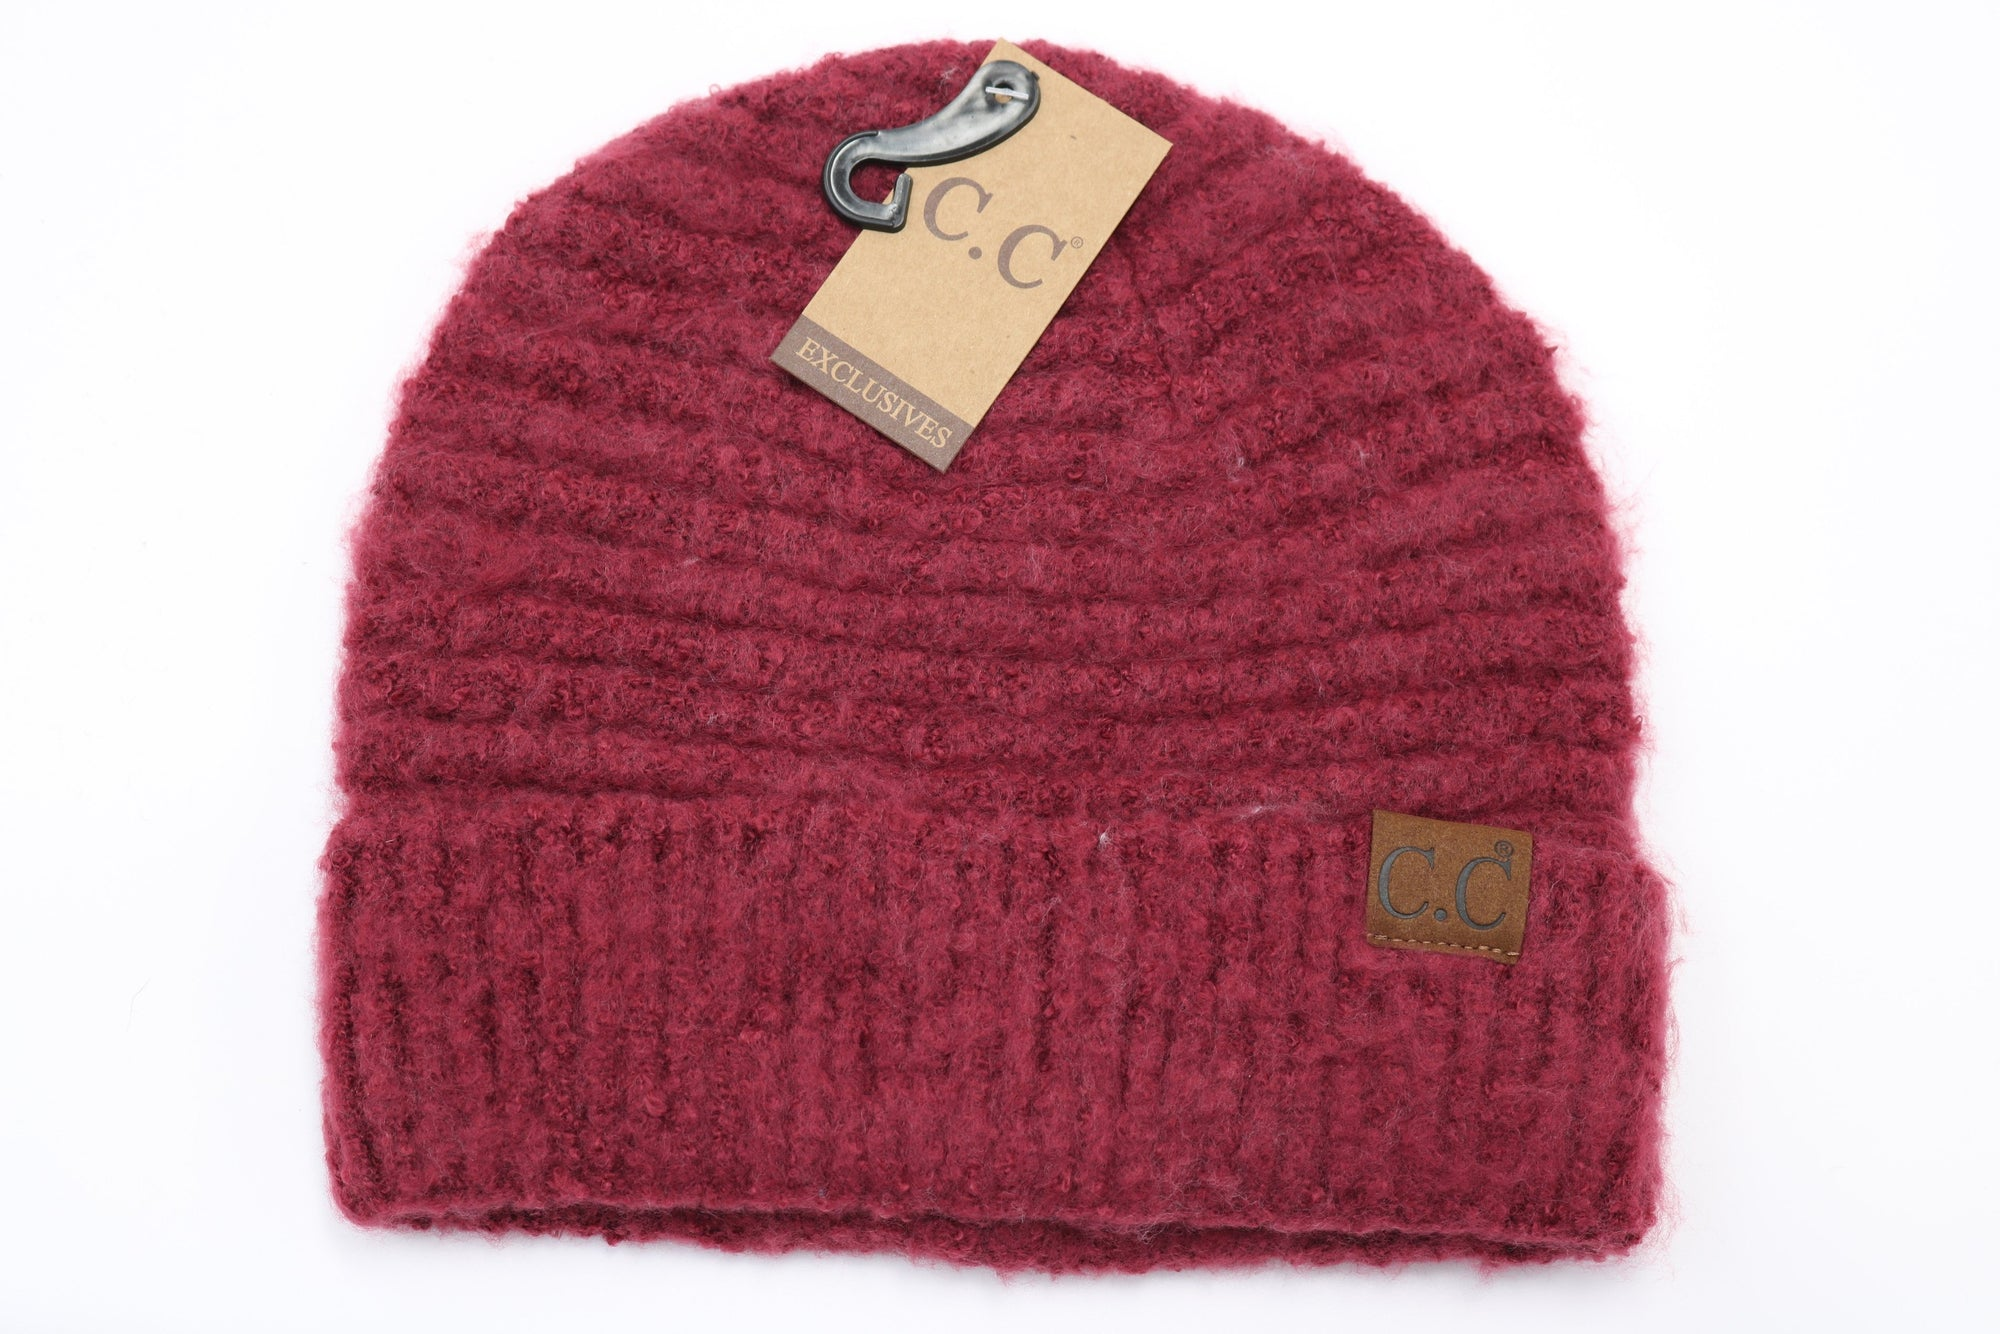 C.C. Solid Boucle Knit Cuff Beanie #HAT7006 (PC)